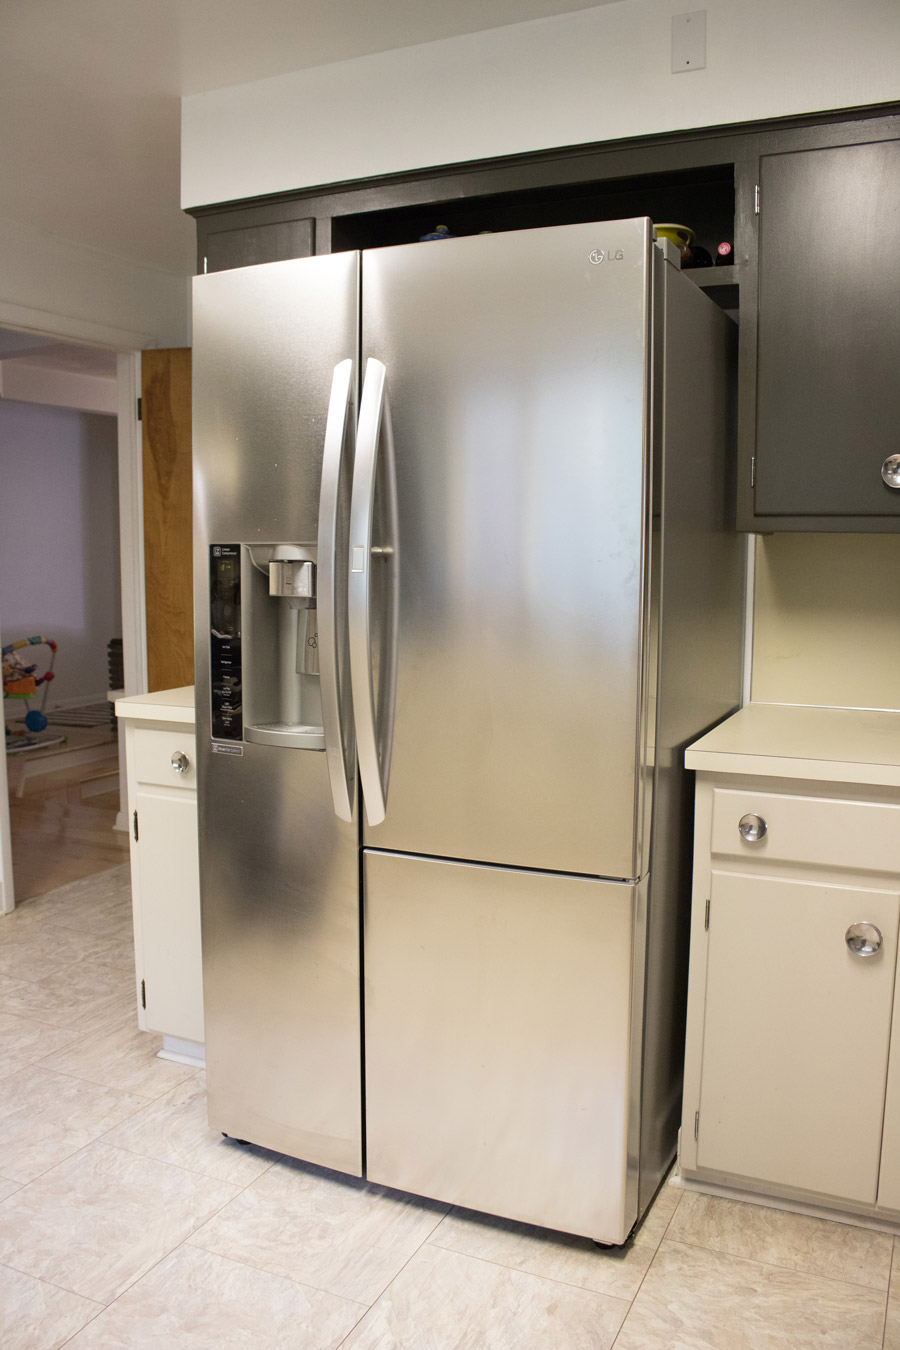 A 21st Century Fridge In a 1950's Kitchen